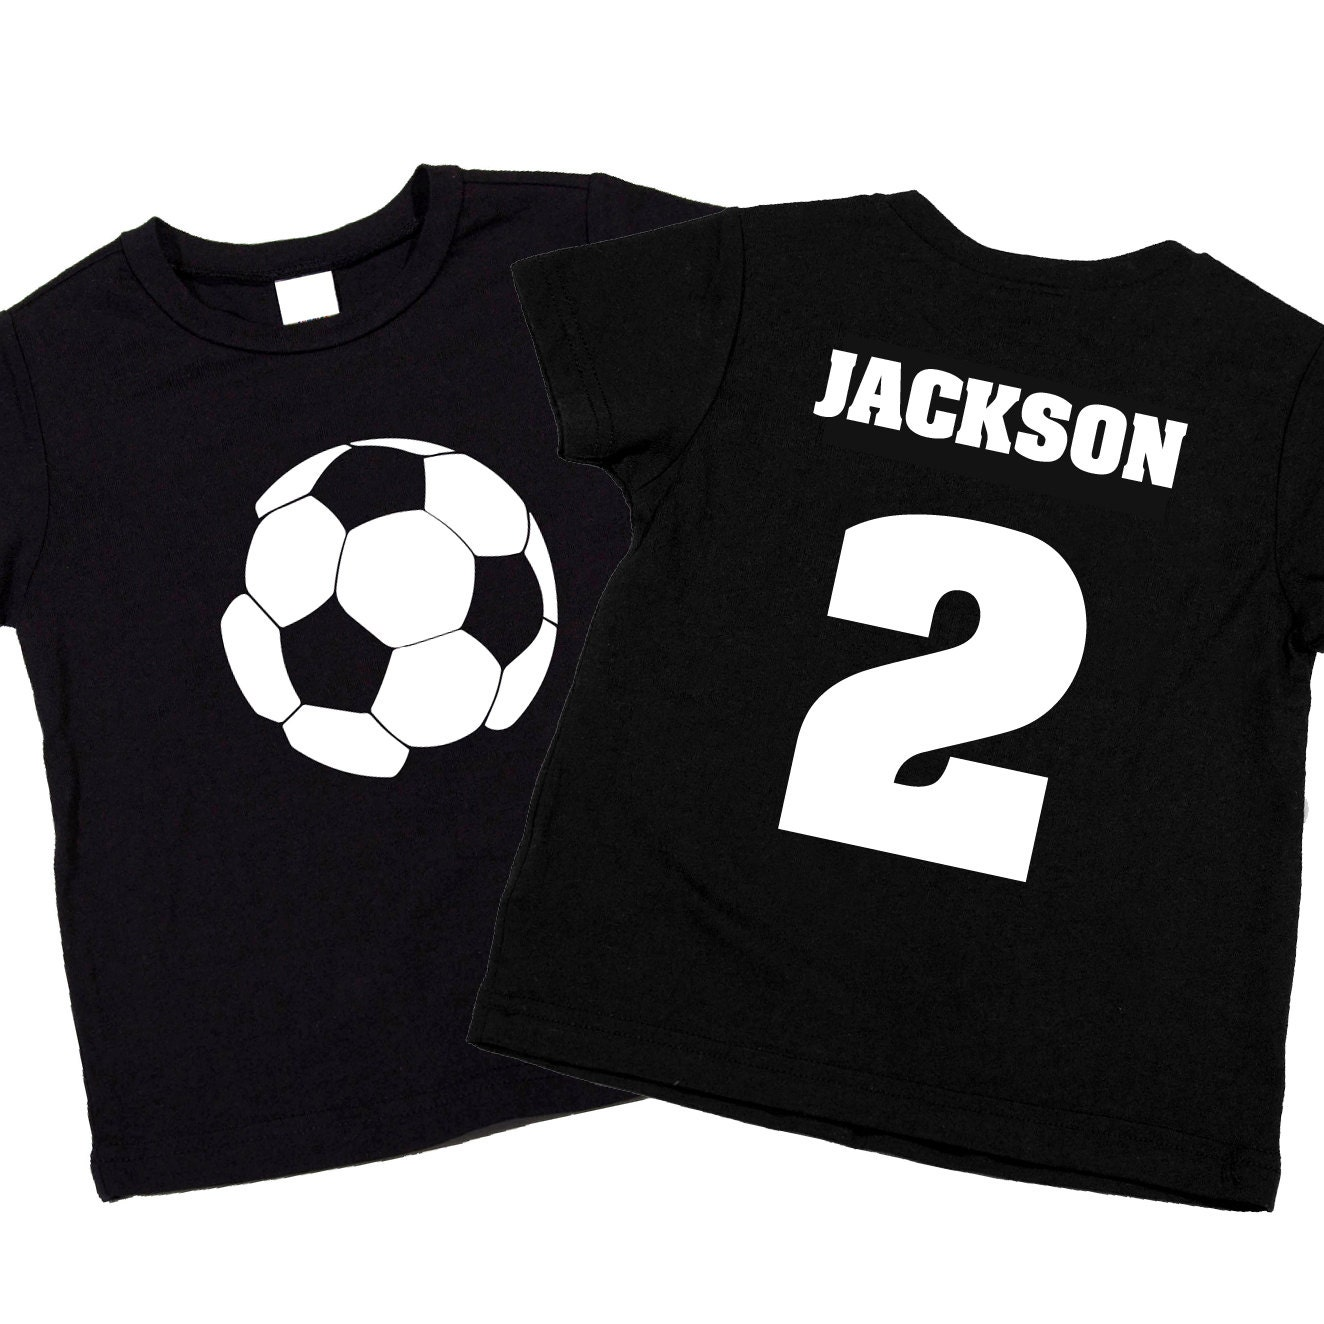 Soccer ball craft ideas - Personalized Soccer Ball T Shirt Birthday Present For Kids Infant Bodysuit Avail